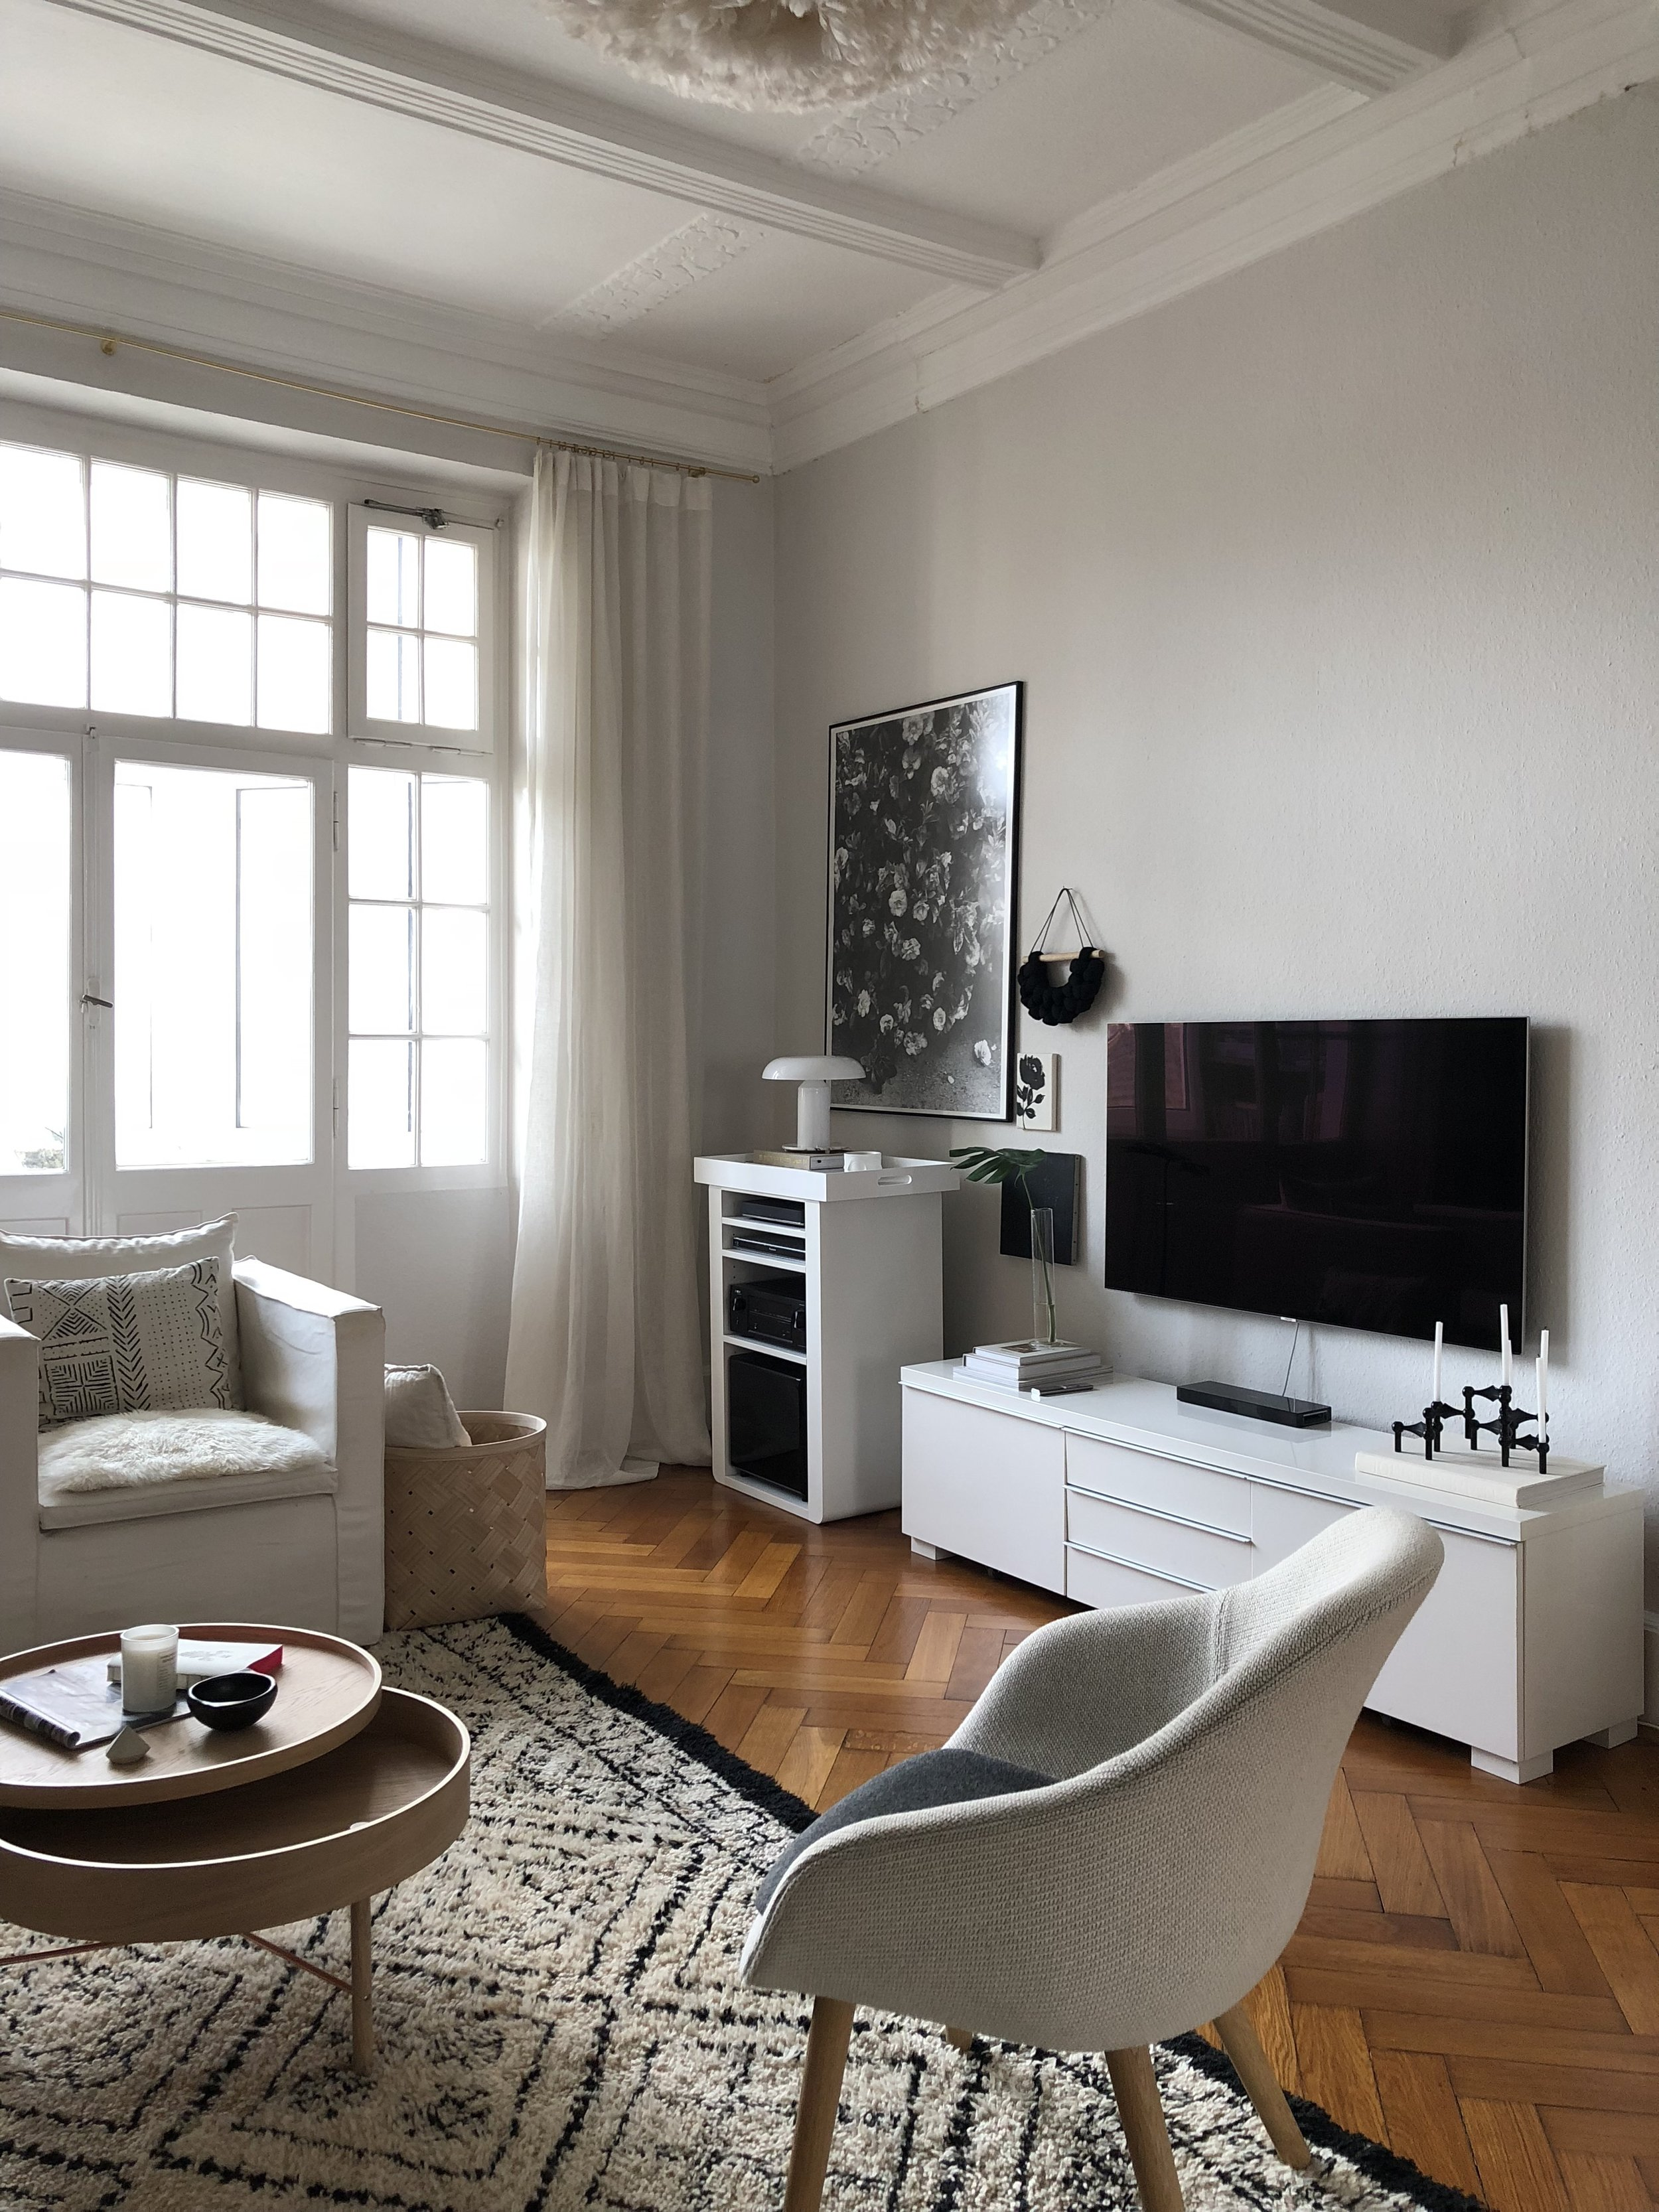 8 Ways To Decorate Around A Flat Screen Tv Decor8